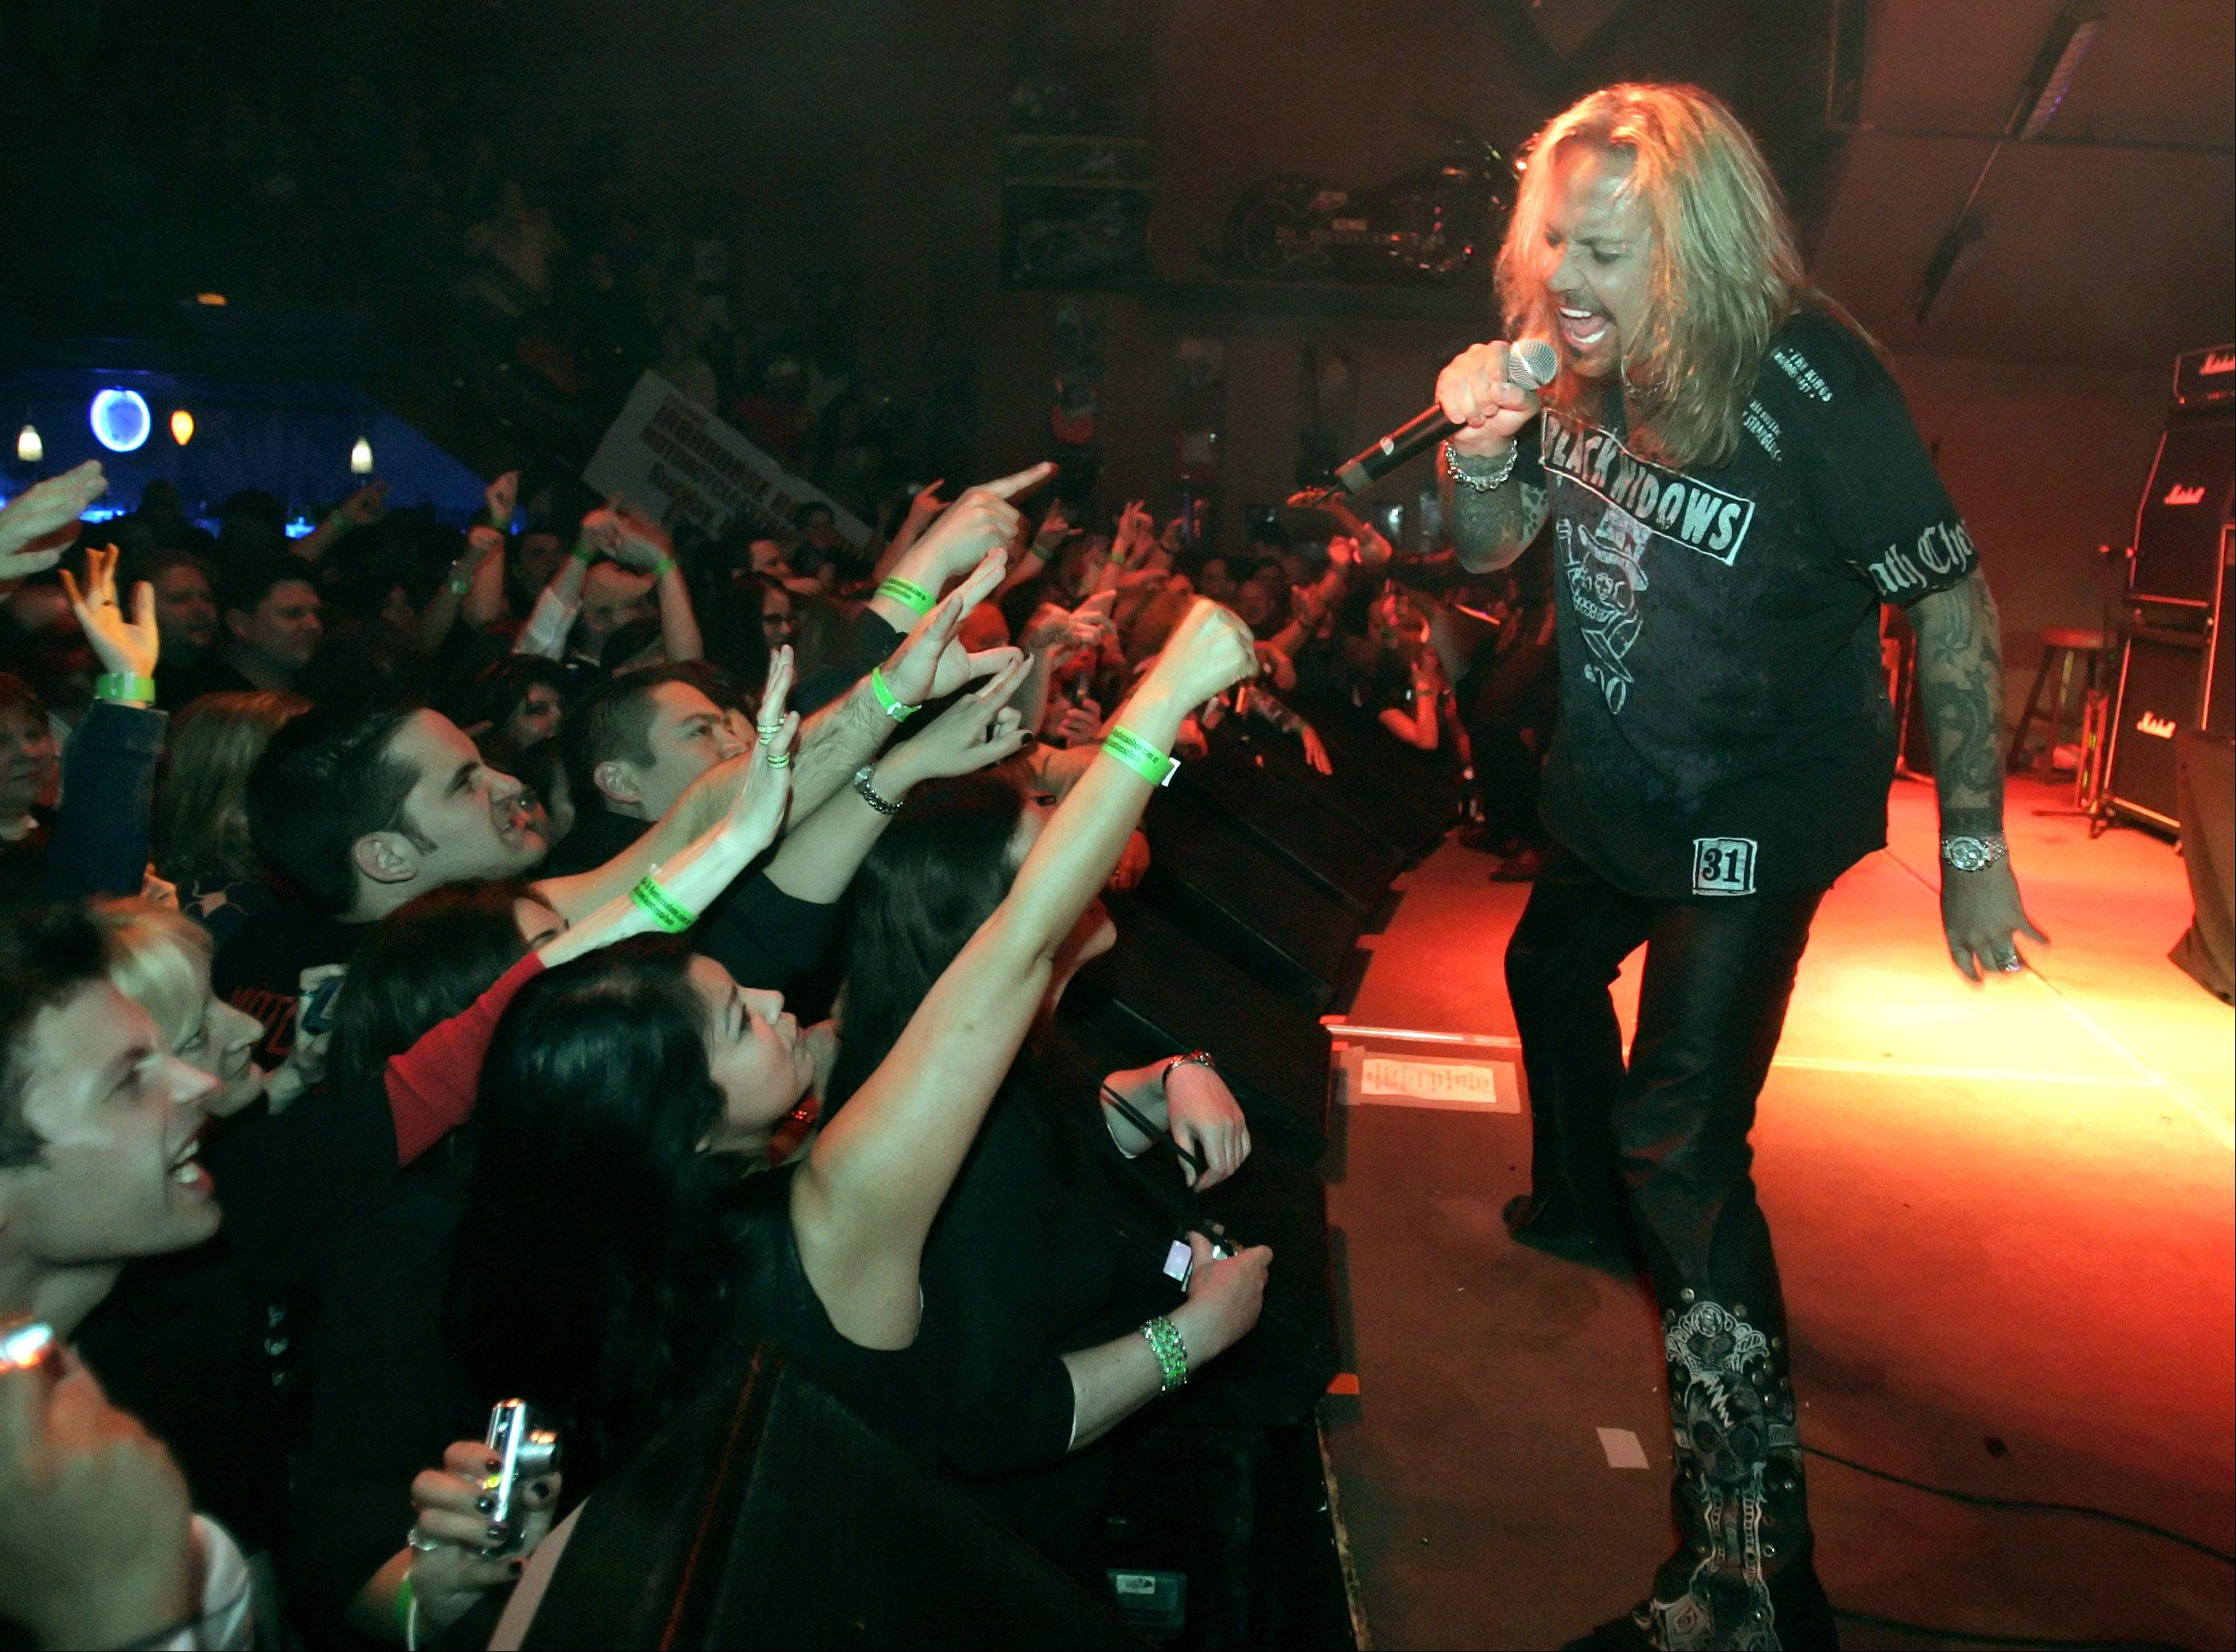 Vince Neil and Mötley Crüe share the bill with Poison and New York Dolls at the First Midwest Bank Amphitheatre in Tinley Park on Friday.